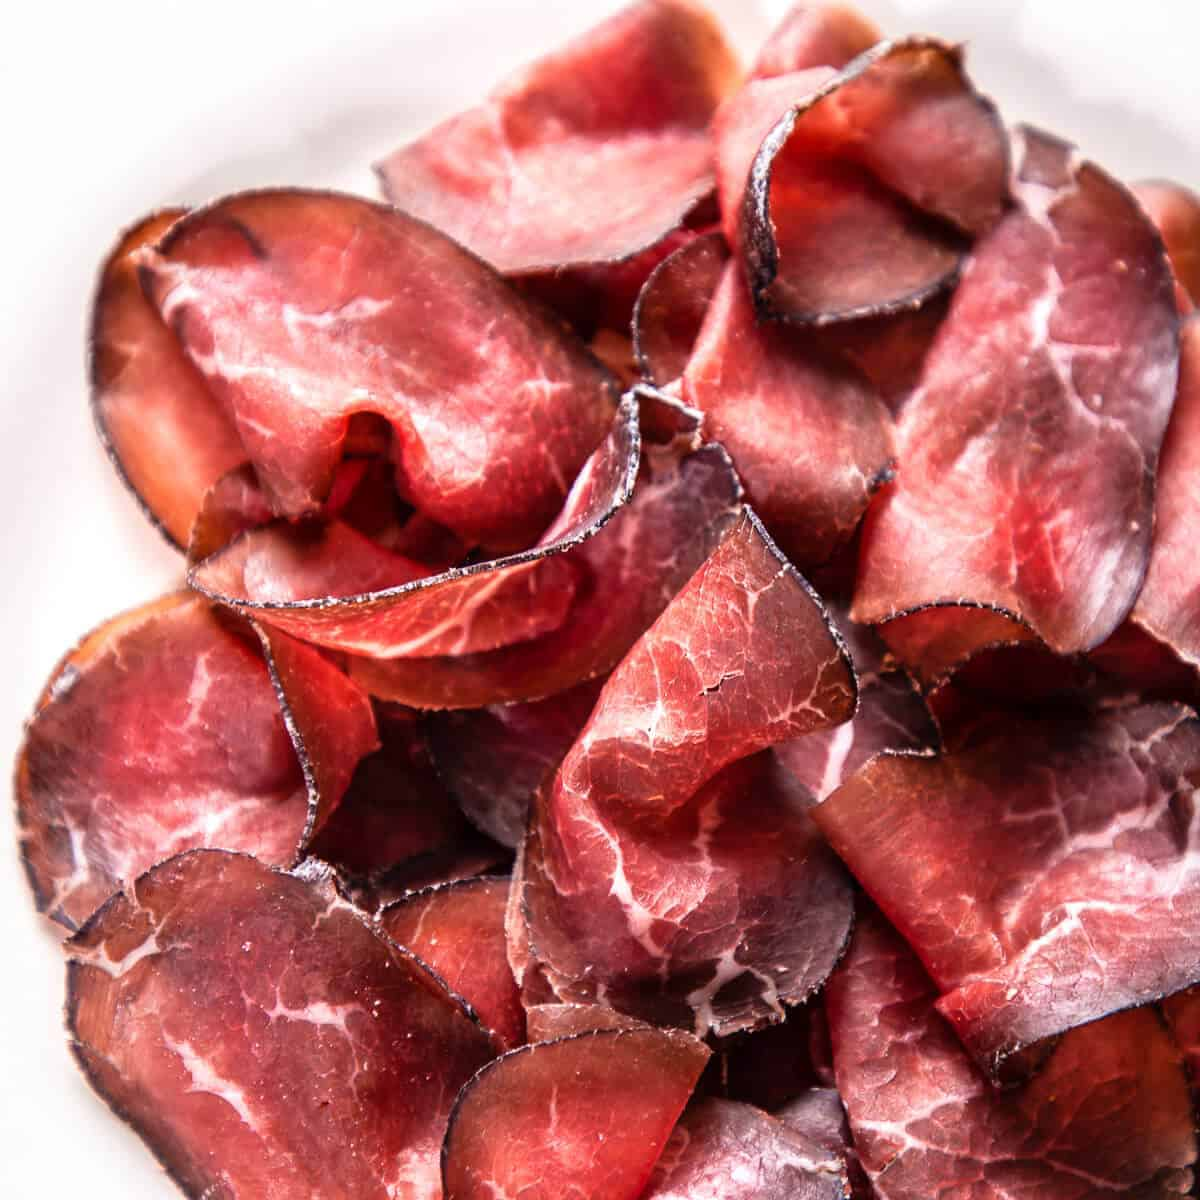 sliced cured beef bresaola on white plate